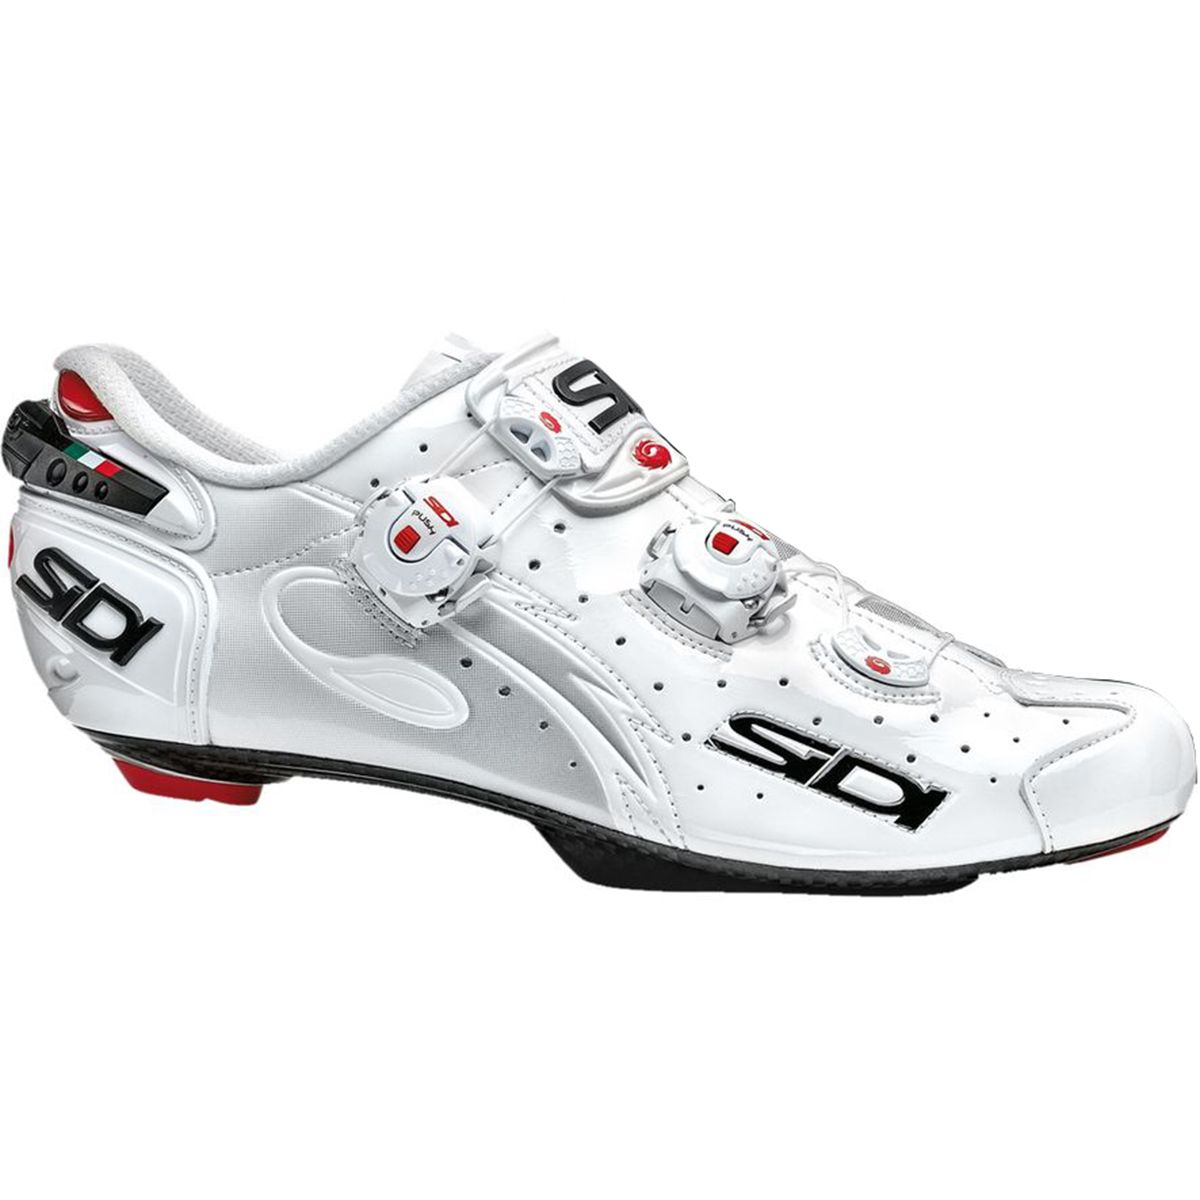 Sidi Wire Womens Cycling Shoes